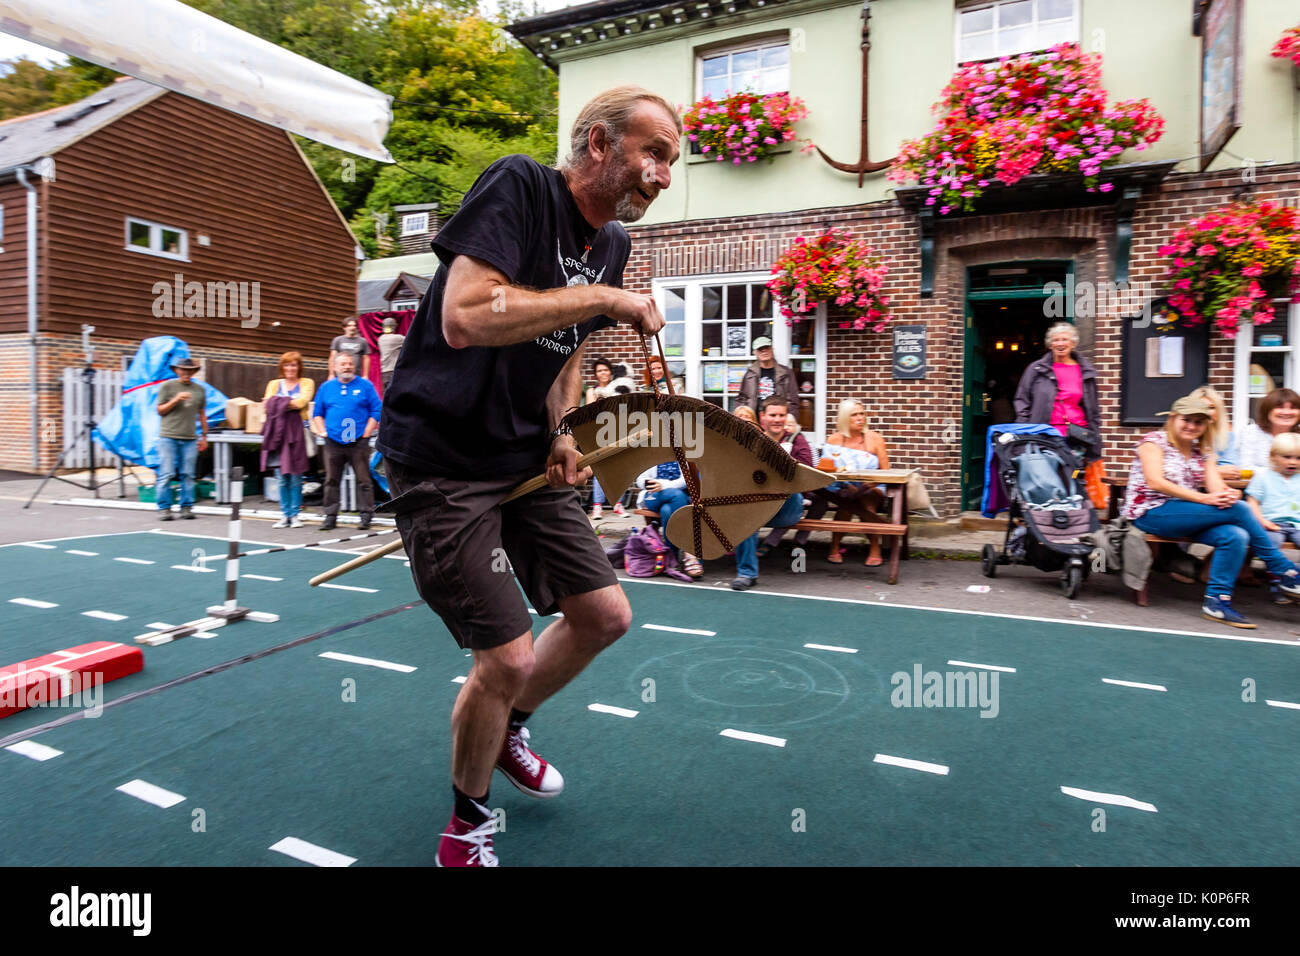 Local People 'Showjumping' With A Toy Horse At The Annual South Street Sports Day and Dog Show, Lewes, East Sussex, UK - Stock Image